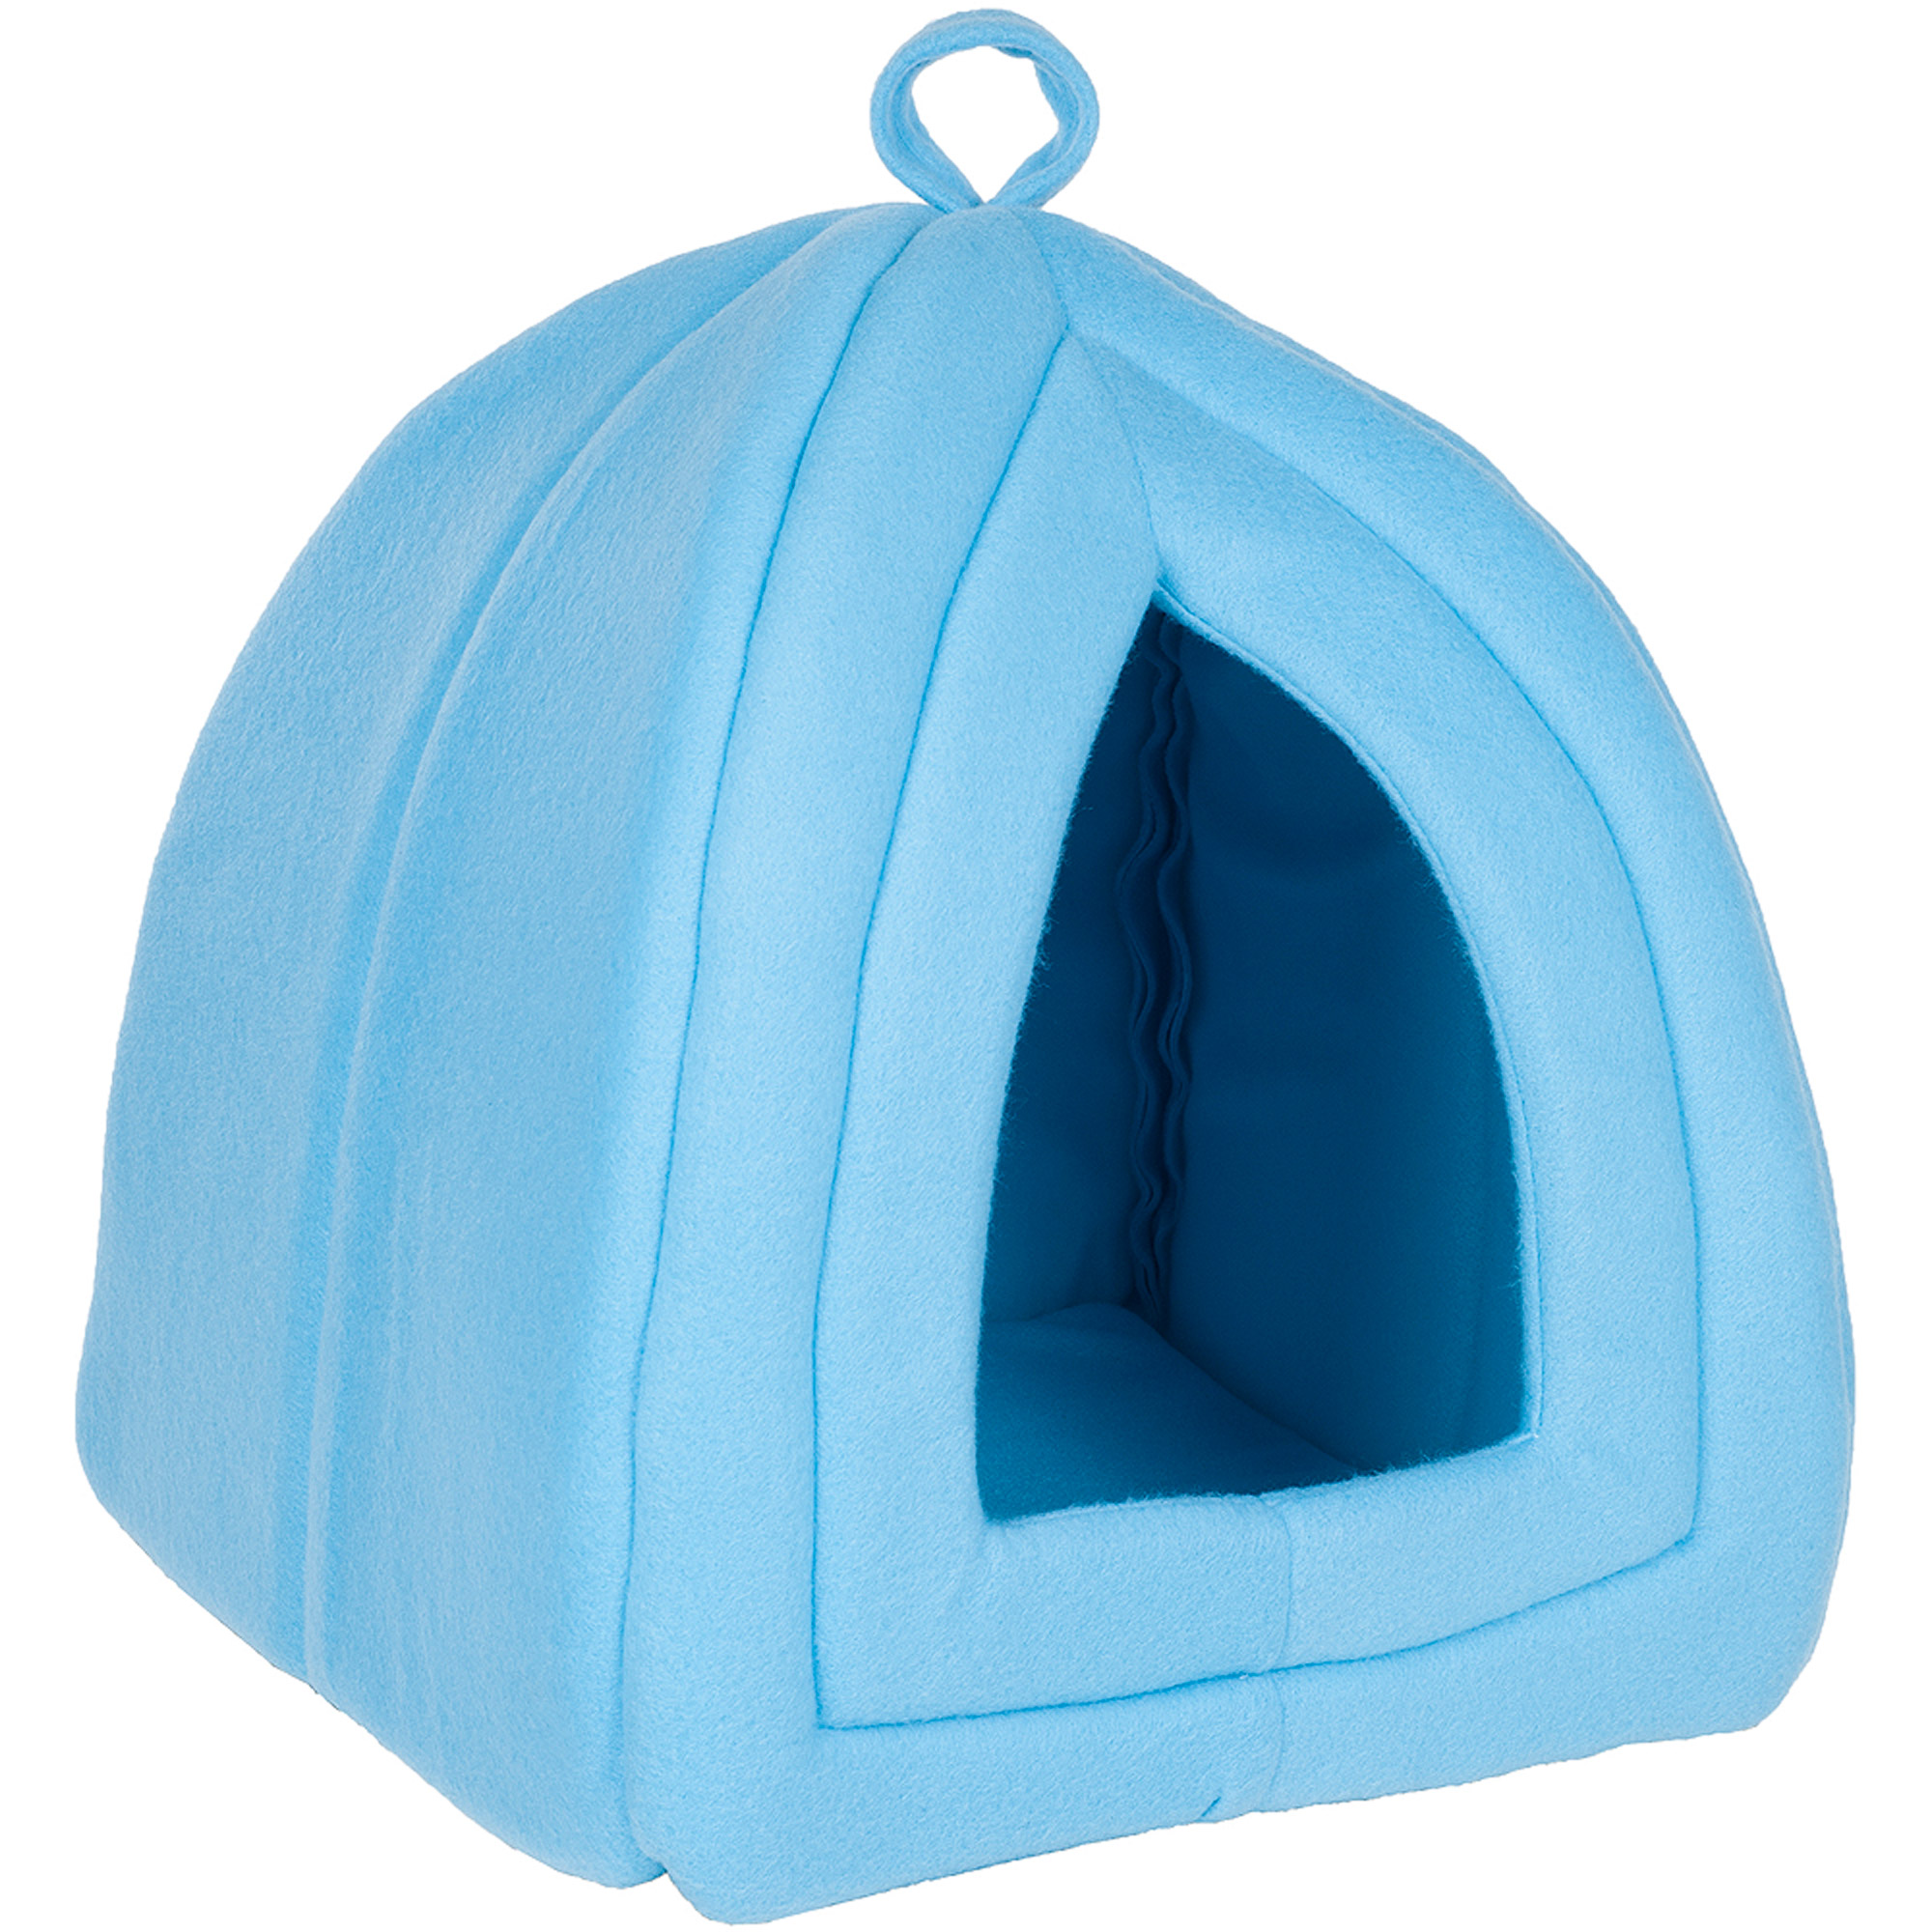 sc 1 st  Walmart & PETMAKER Cozy Kitty Tent Igloo Plush Enclosed Cat Bed - Walmart.com